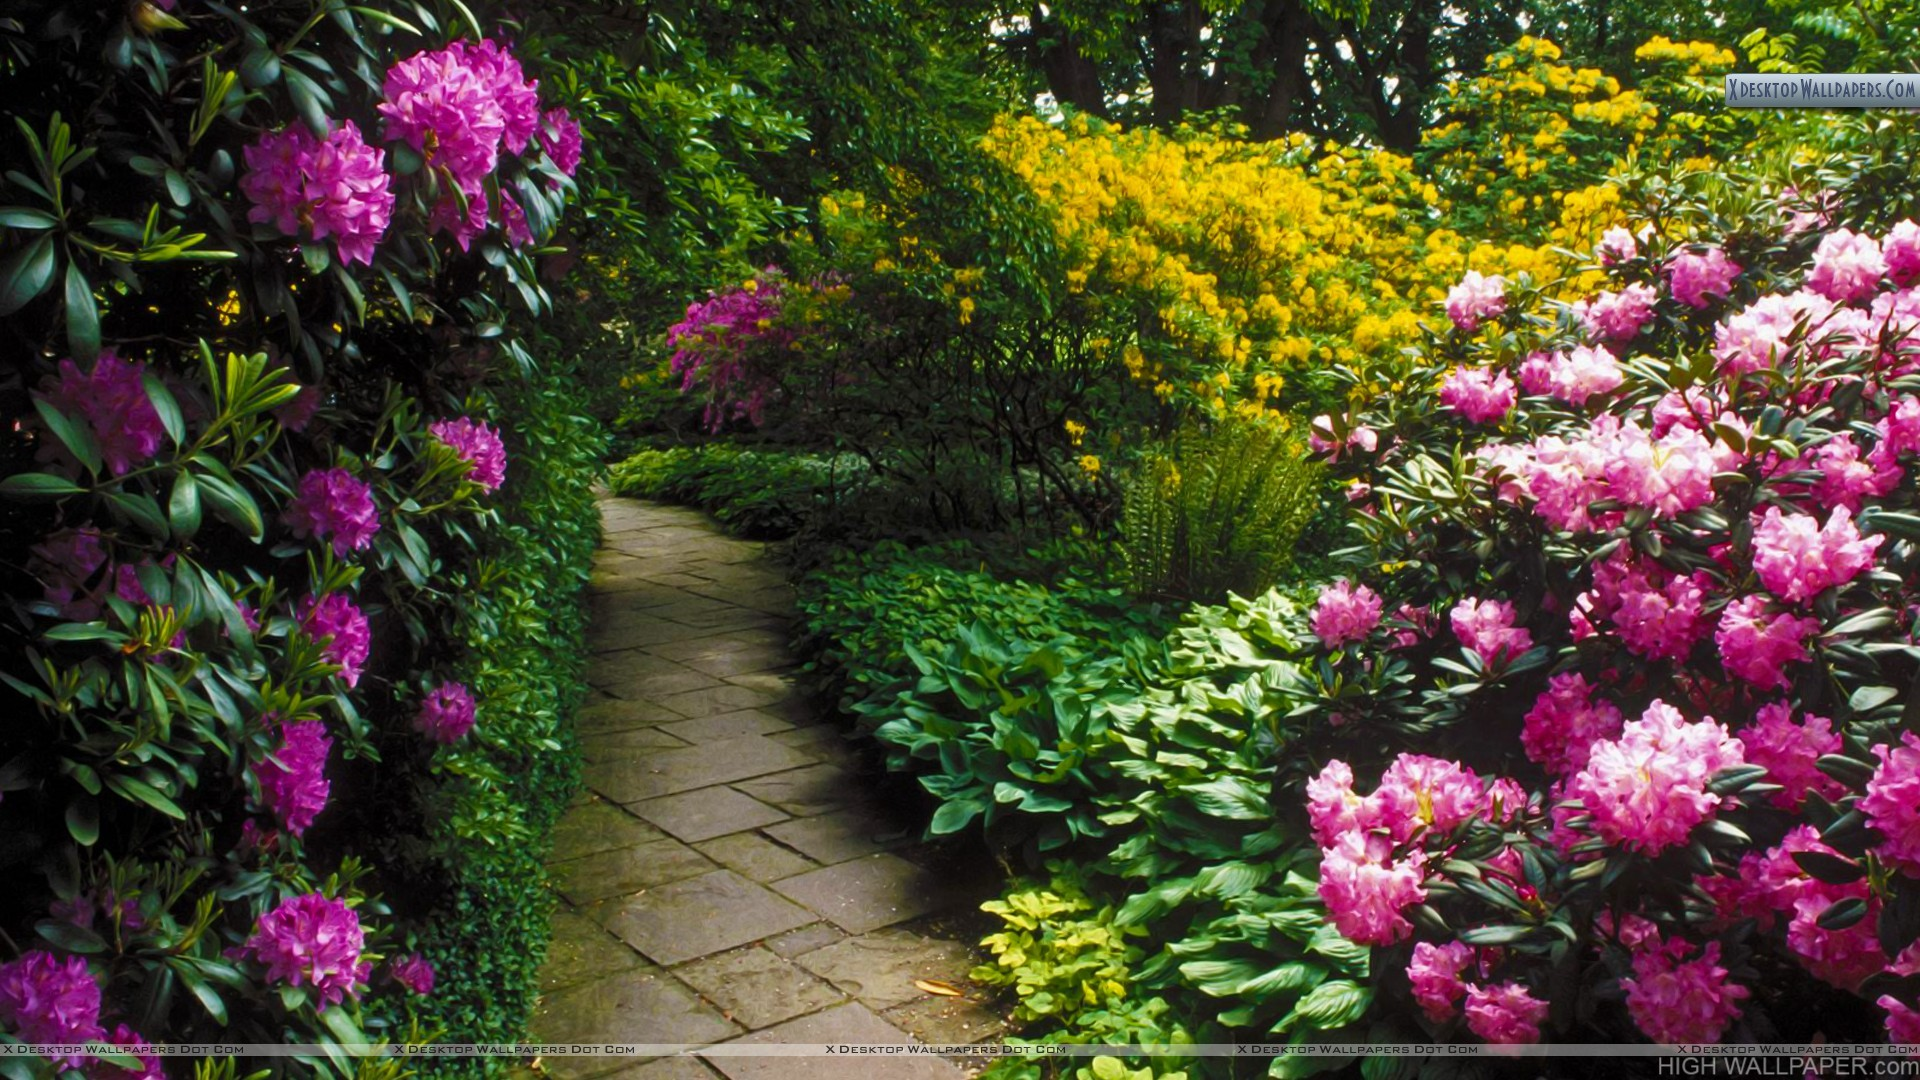 Rhododendrons Berggarten Hannover Germany